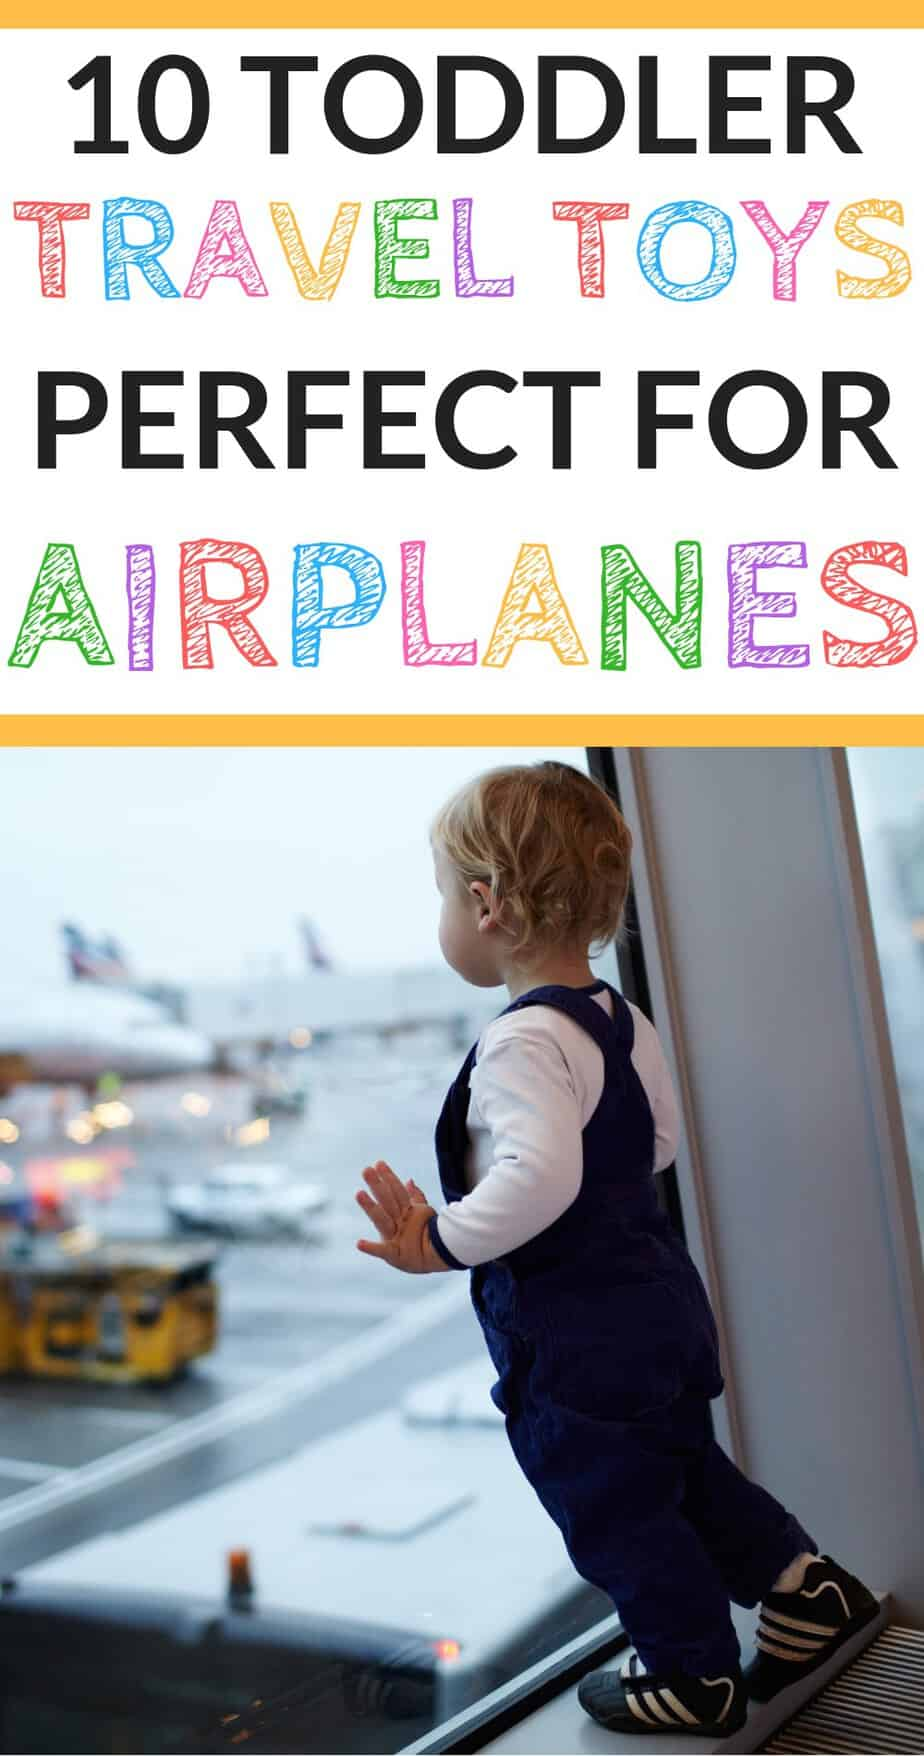 The top travel toys for toddlers for airplane travel! (From someone who has traveled across the world with a toddler!)